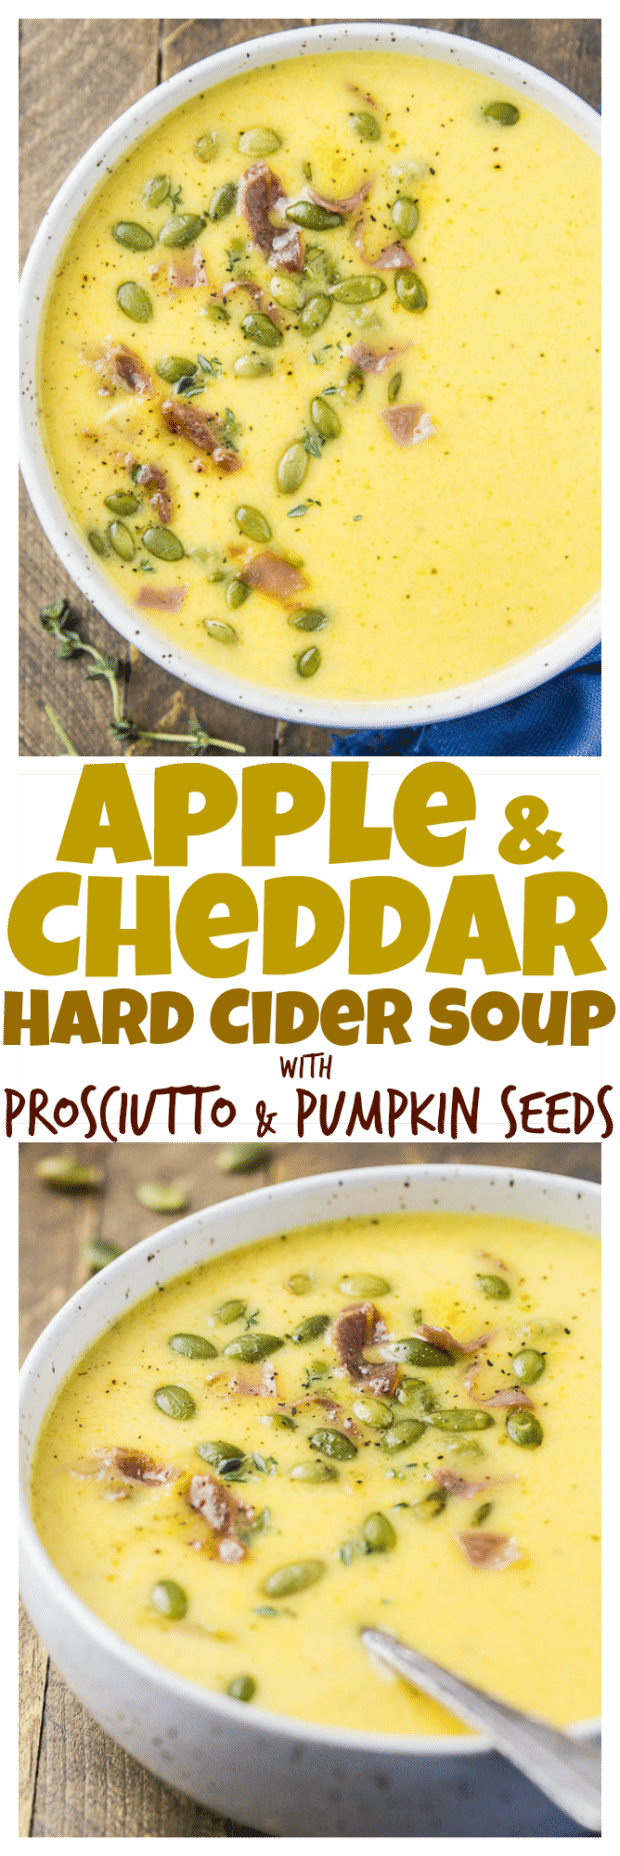 Apple & Cheddar Hard Cider Soup with Prosciutto & Pumpkin Seeds